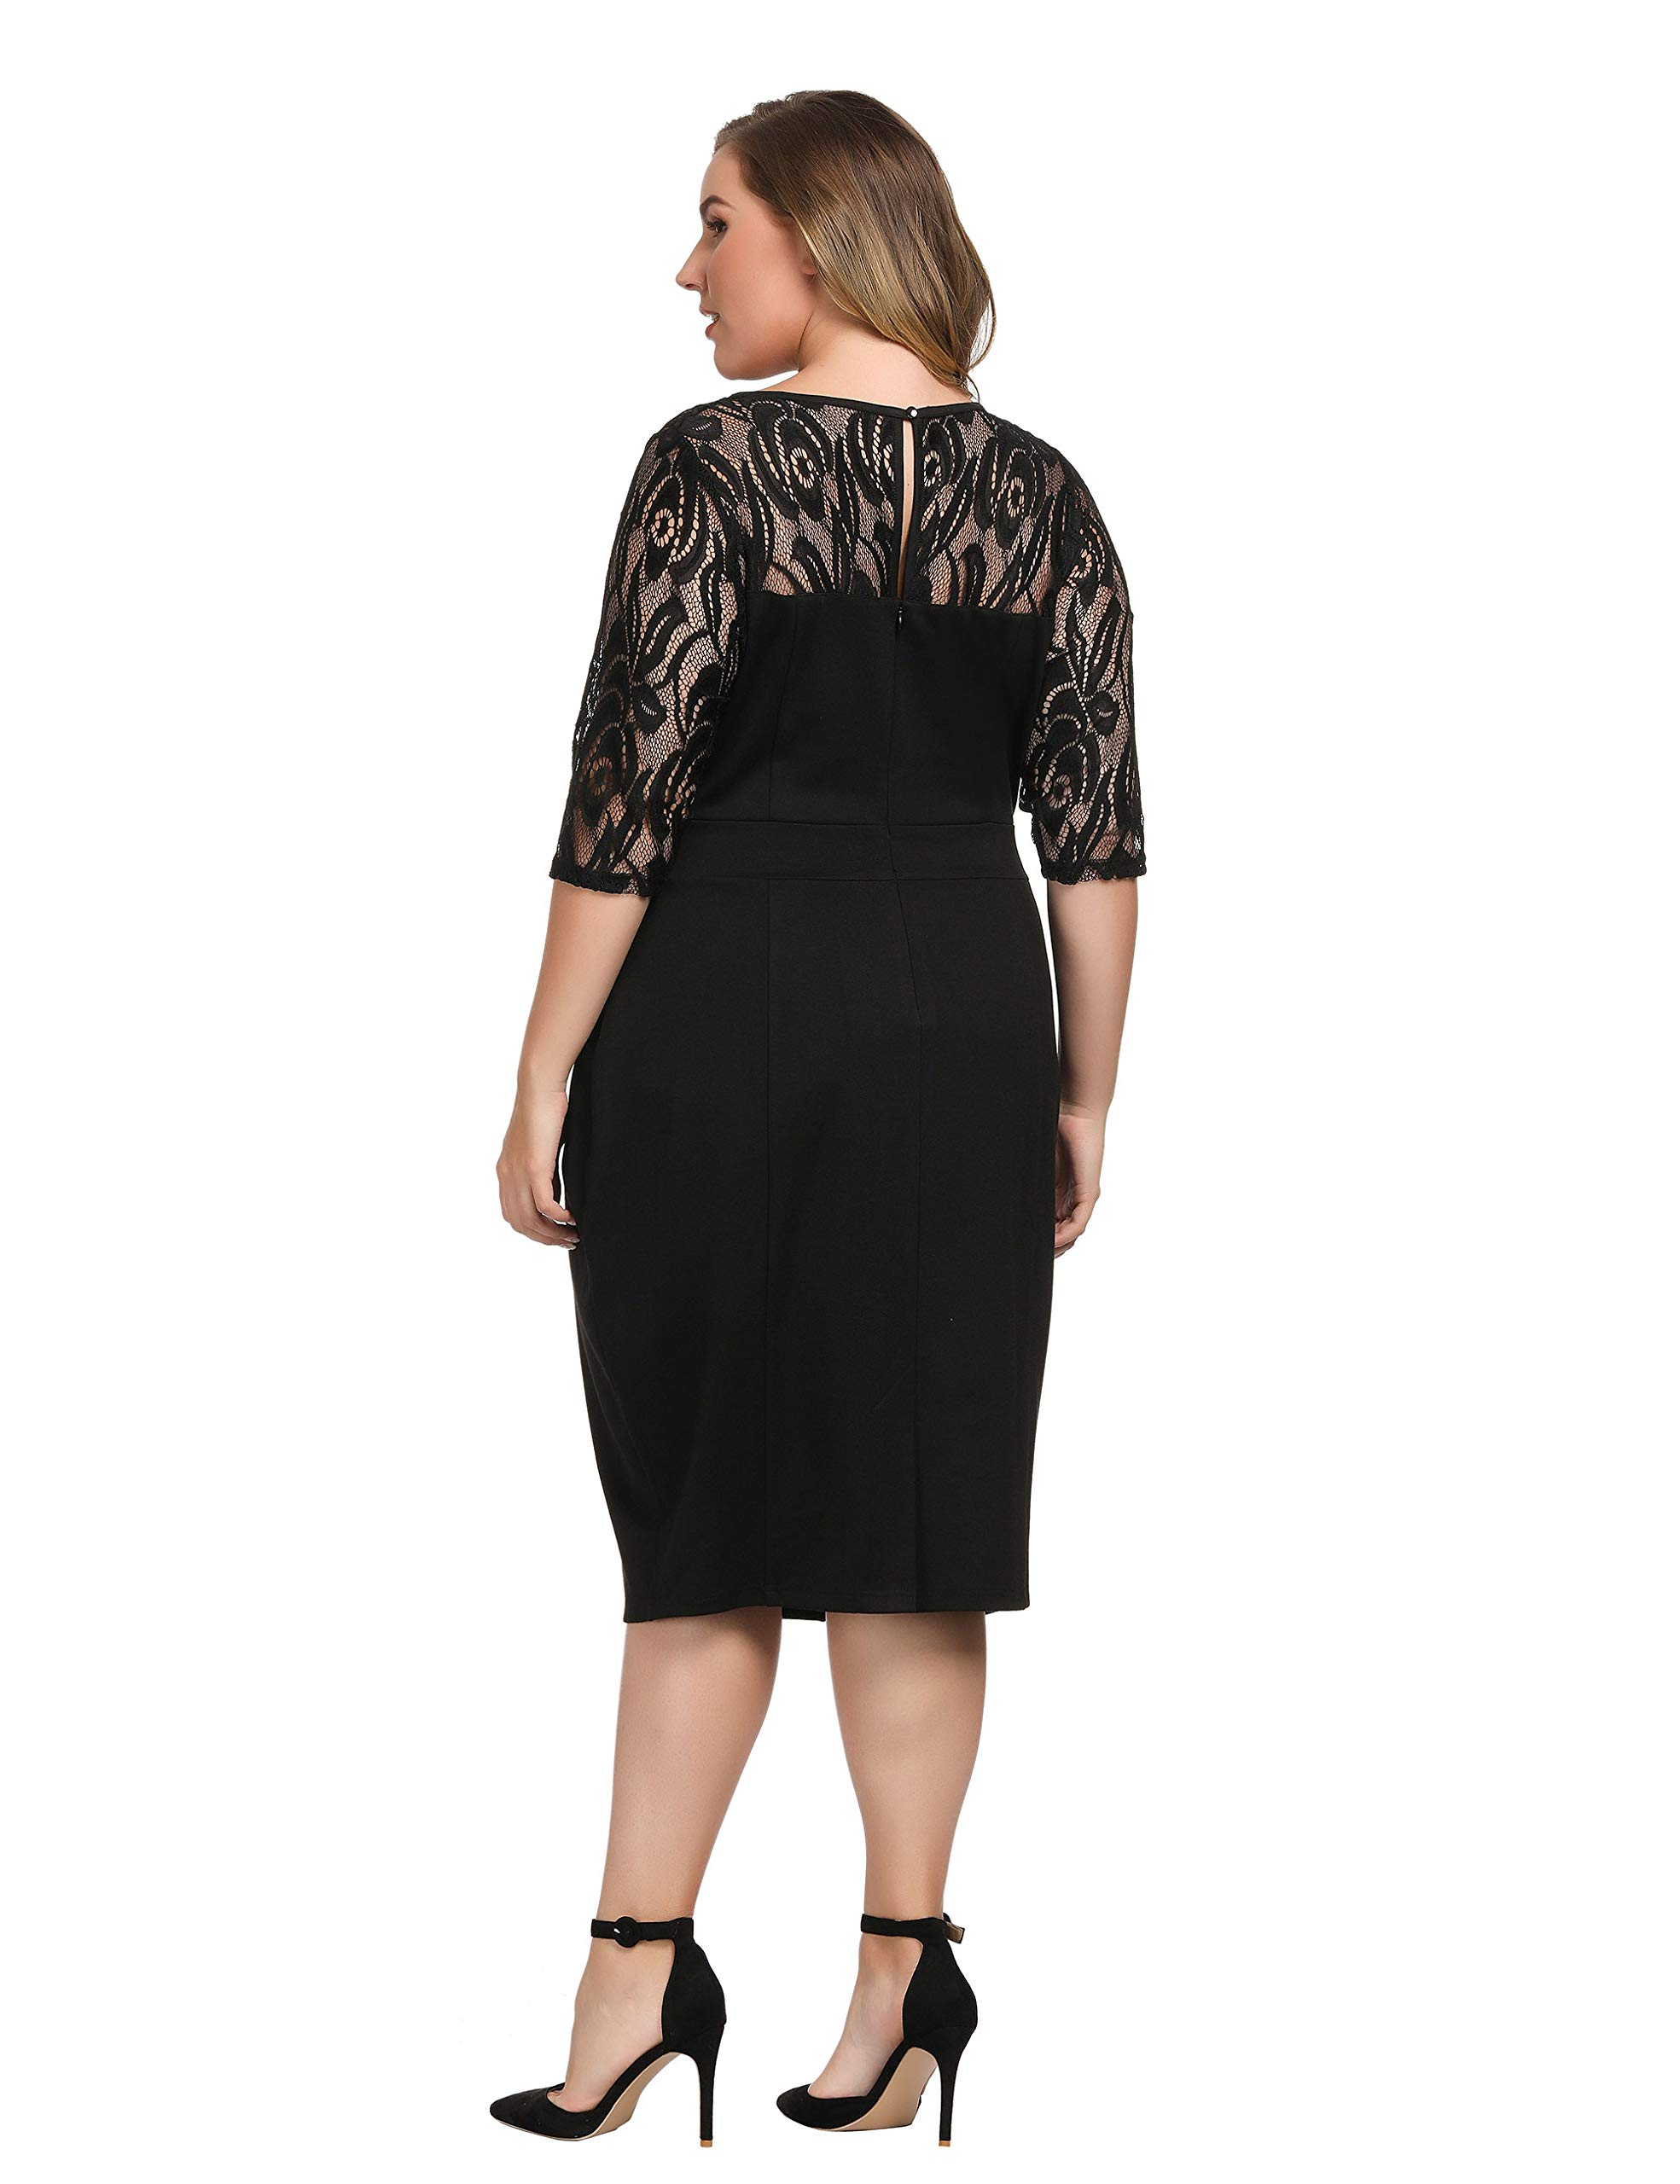 bab1f311c1f35a Chicwe Women's Plus Size Stretch Sheath Dress with Floral Lace Top - Knee  Length Work Casual Party Cocktail Dress - C17C218 < Dresses < Clothing, ...